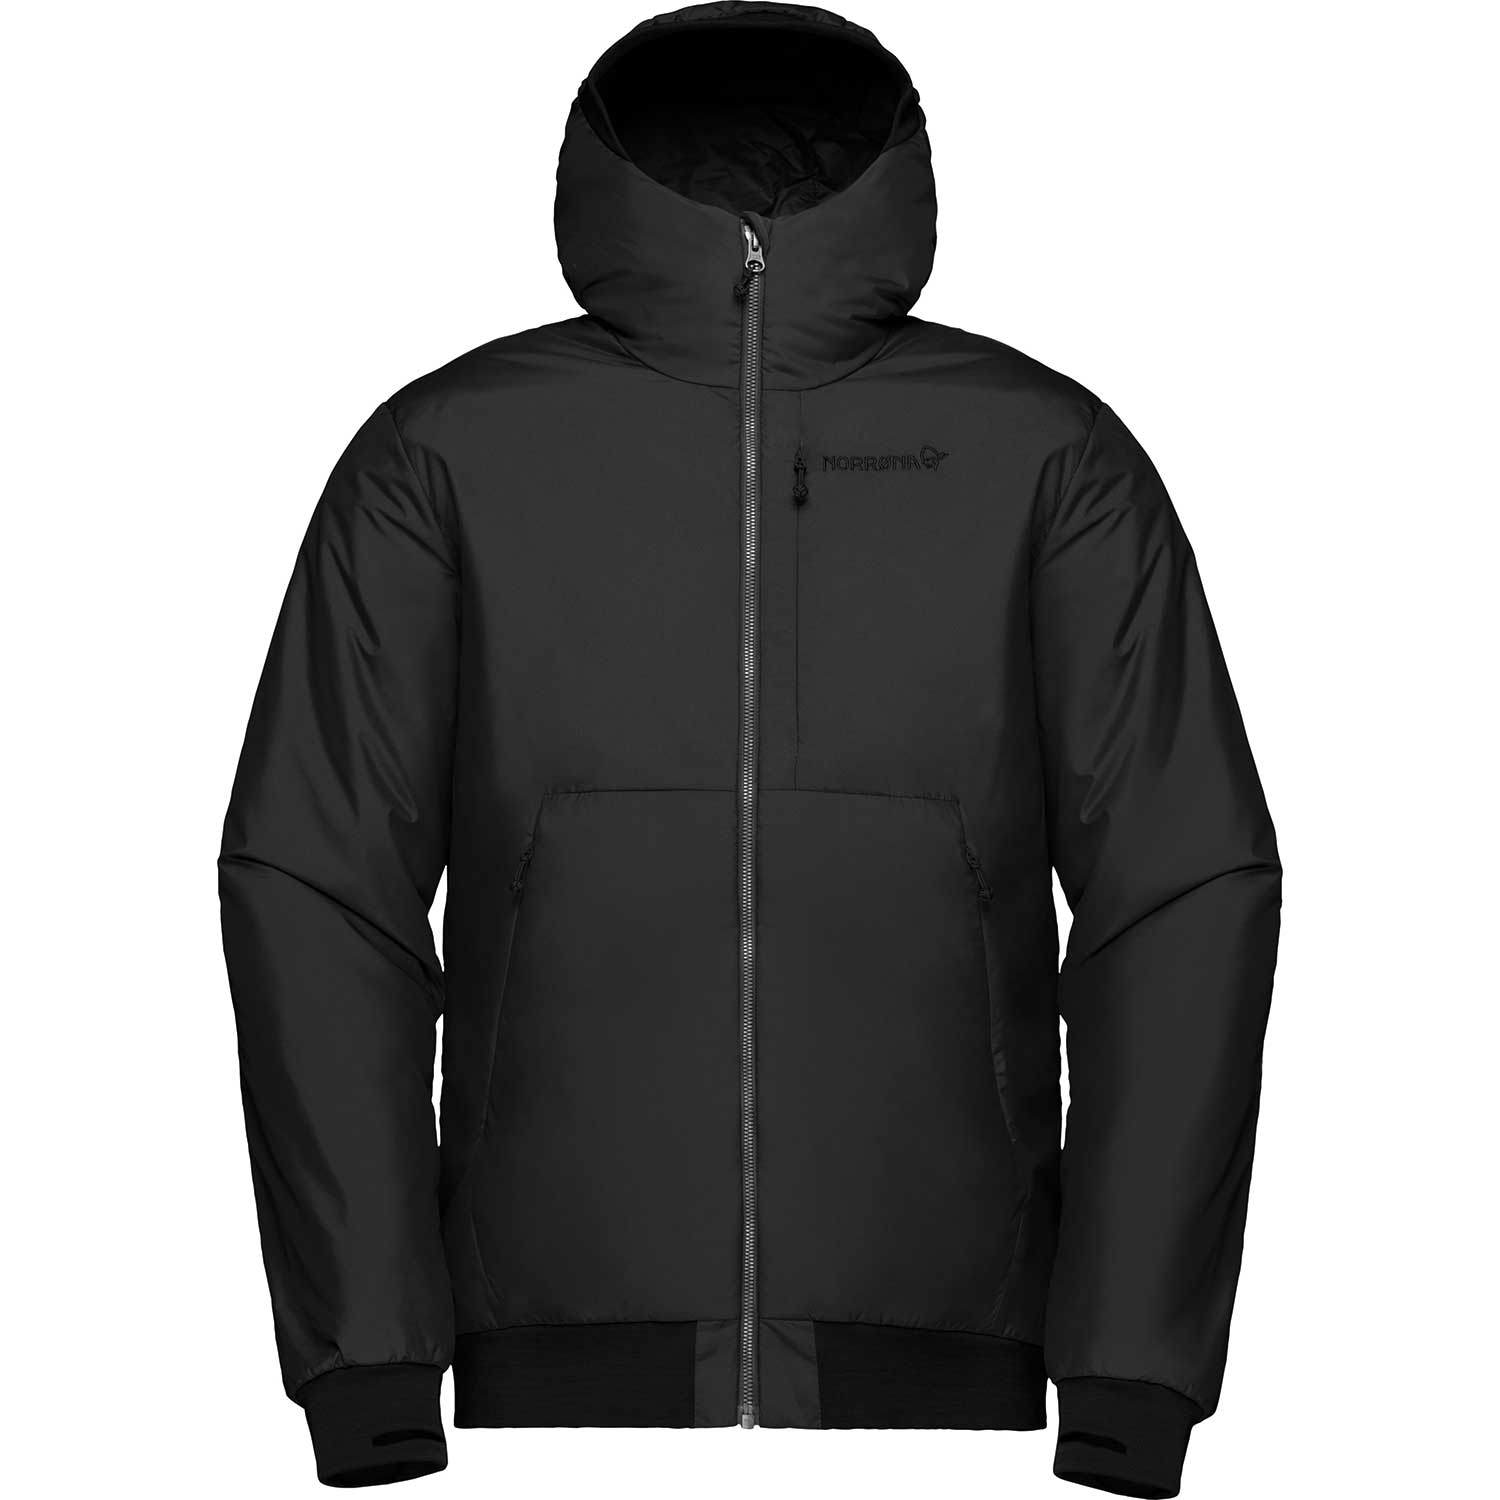 røldal insulated hood Jacket (M)